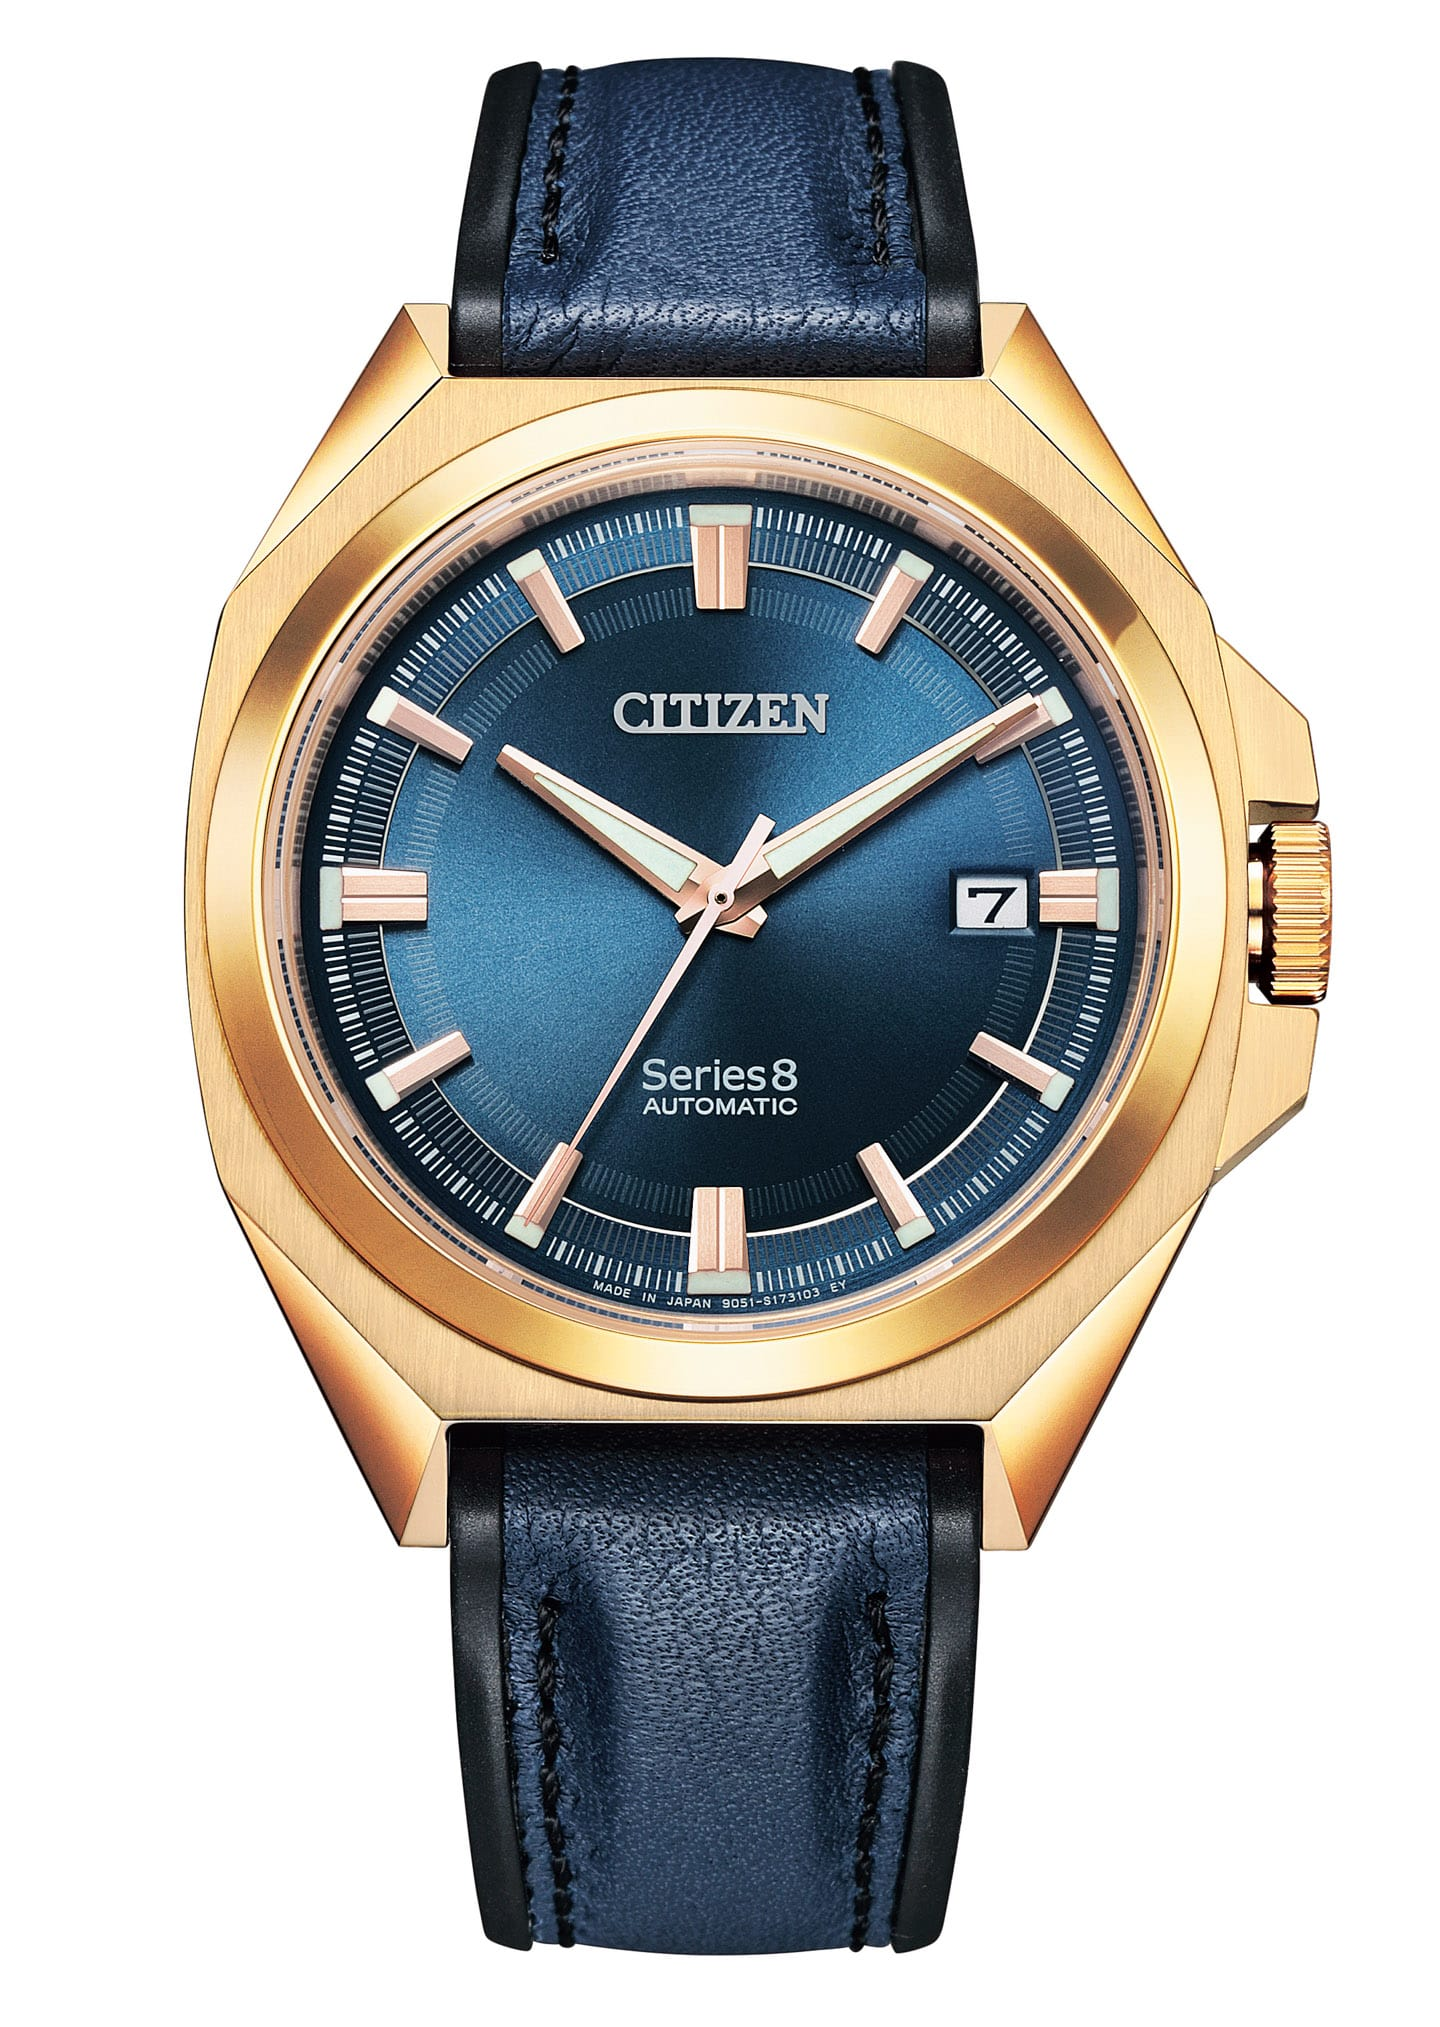 Citizen Series 8 Automatic watches 7 min